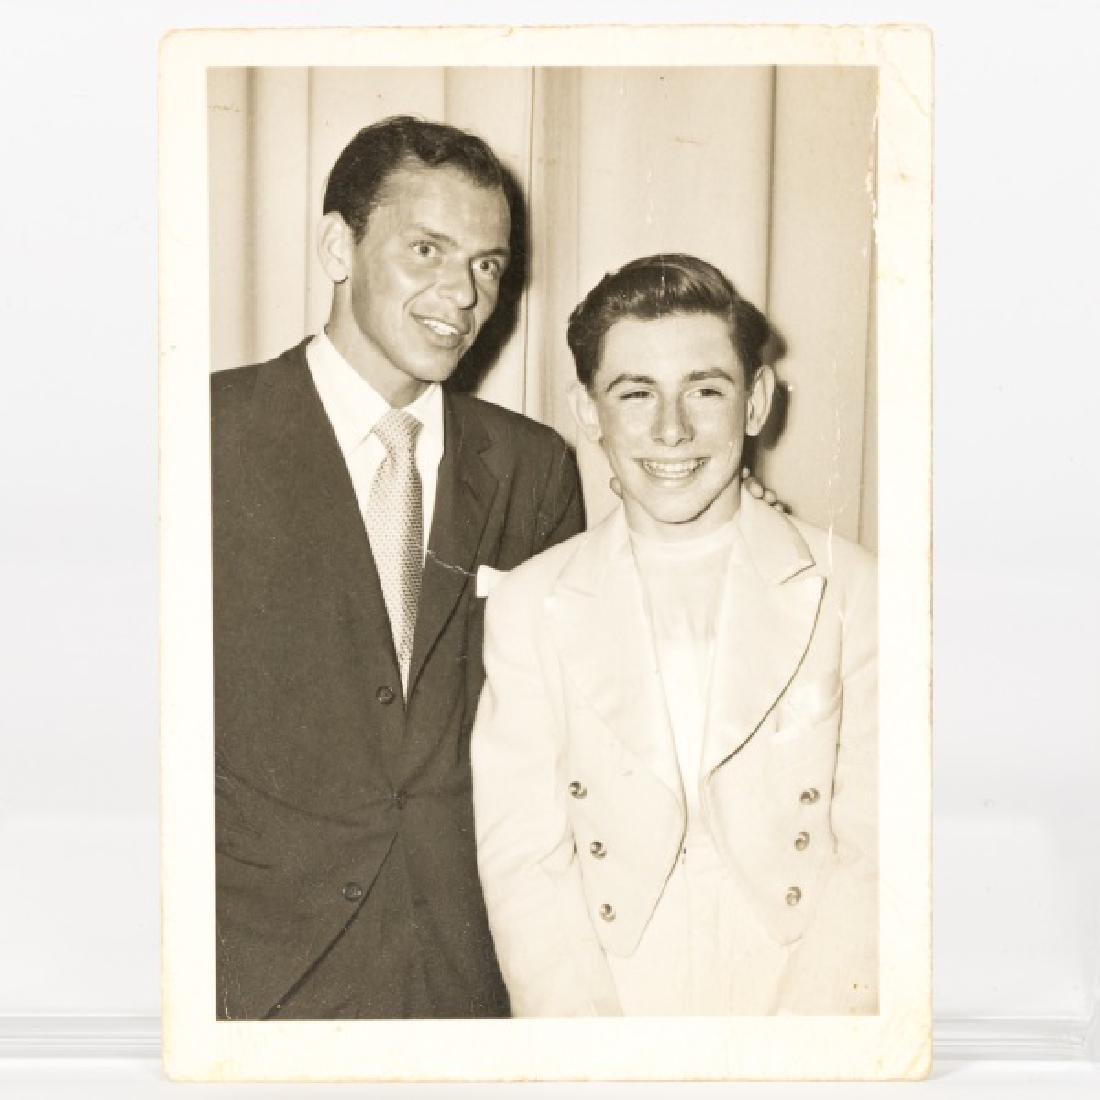 Frank Sinatra Signed Black & White Photograph